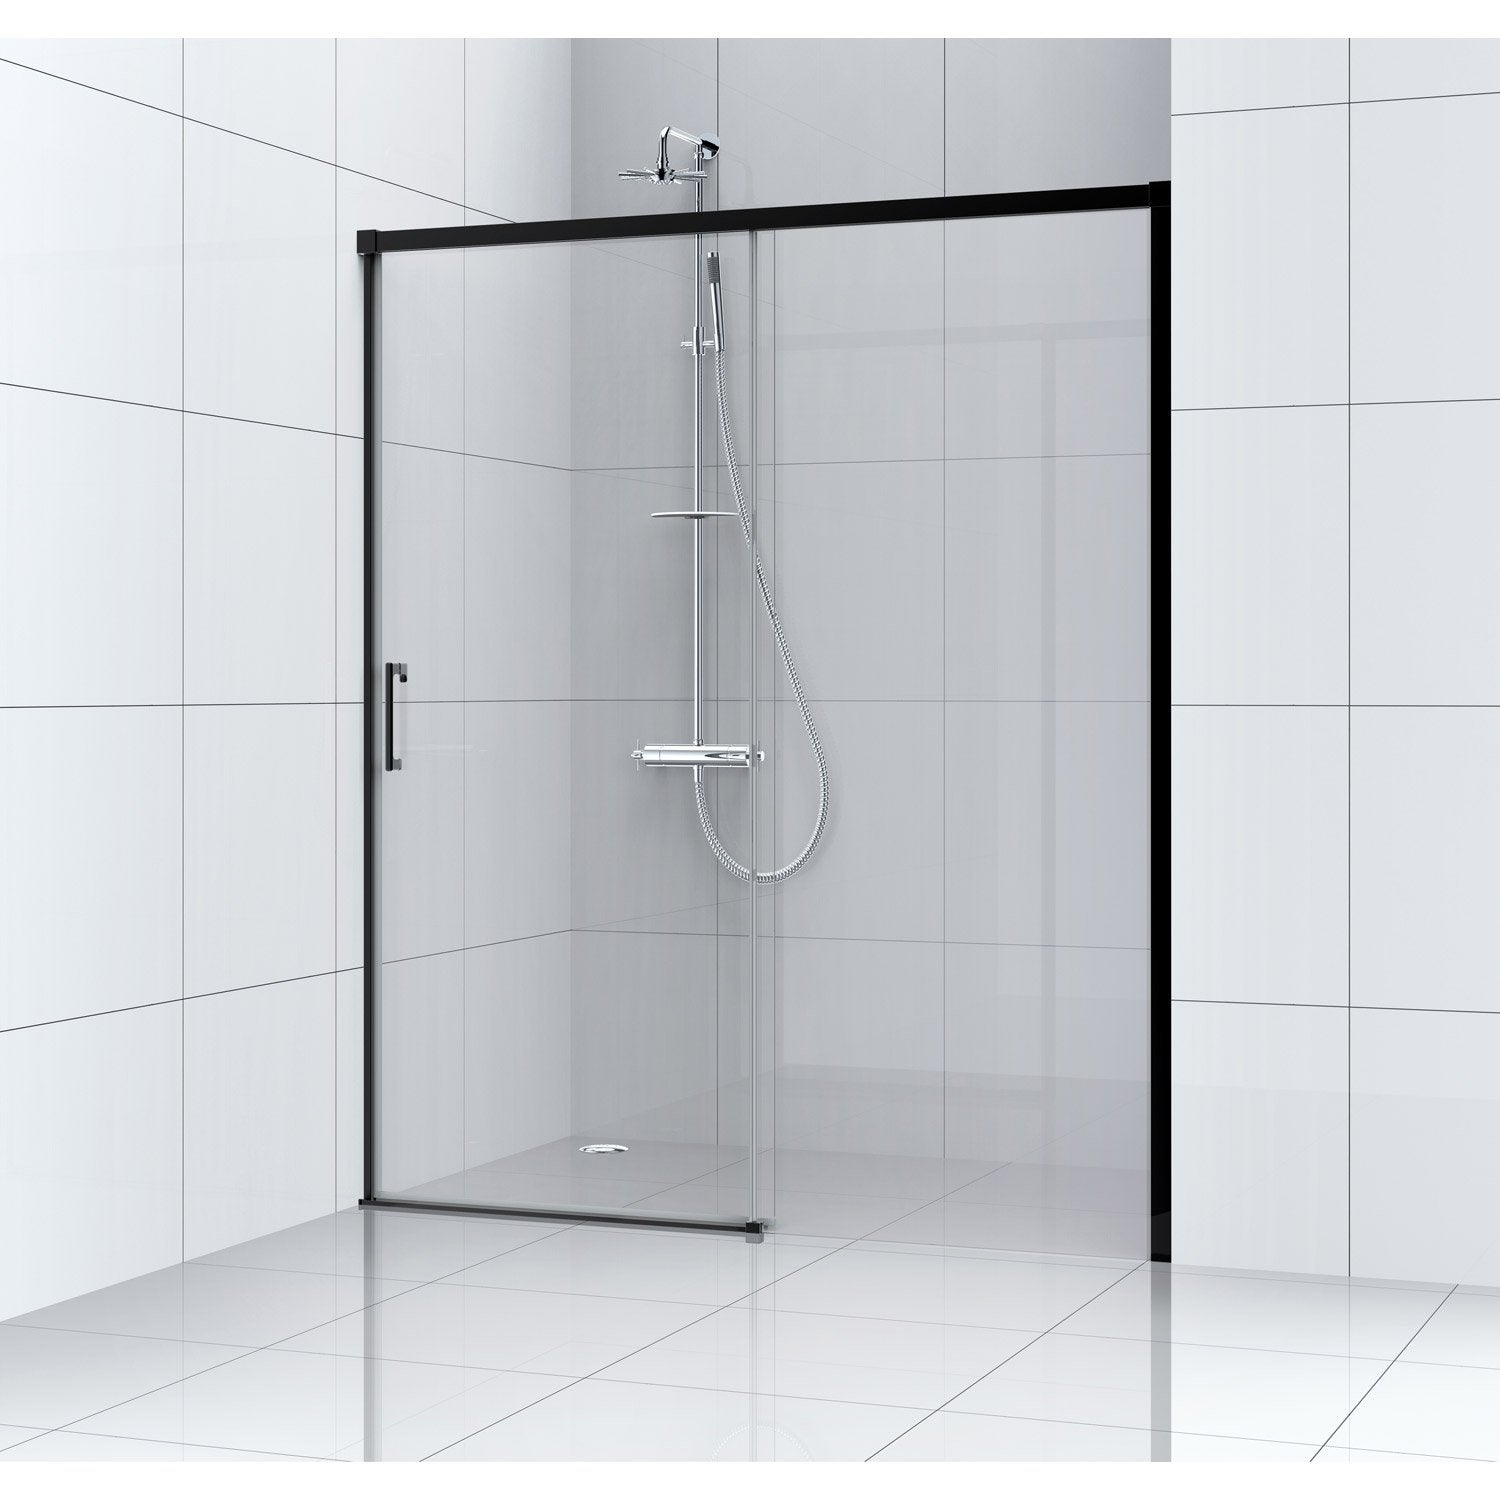 Porte de douche coulissante l 100 cm verre transparent for Porte en verre coulissante leroy merlin